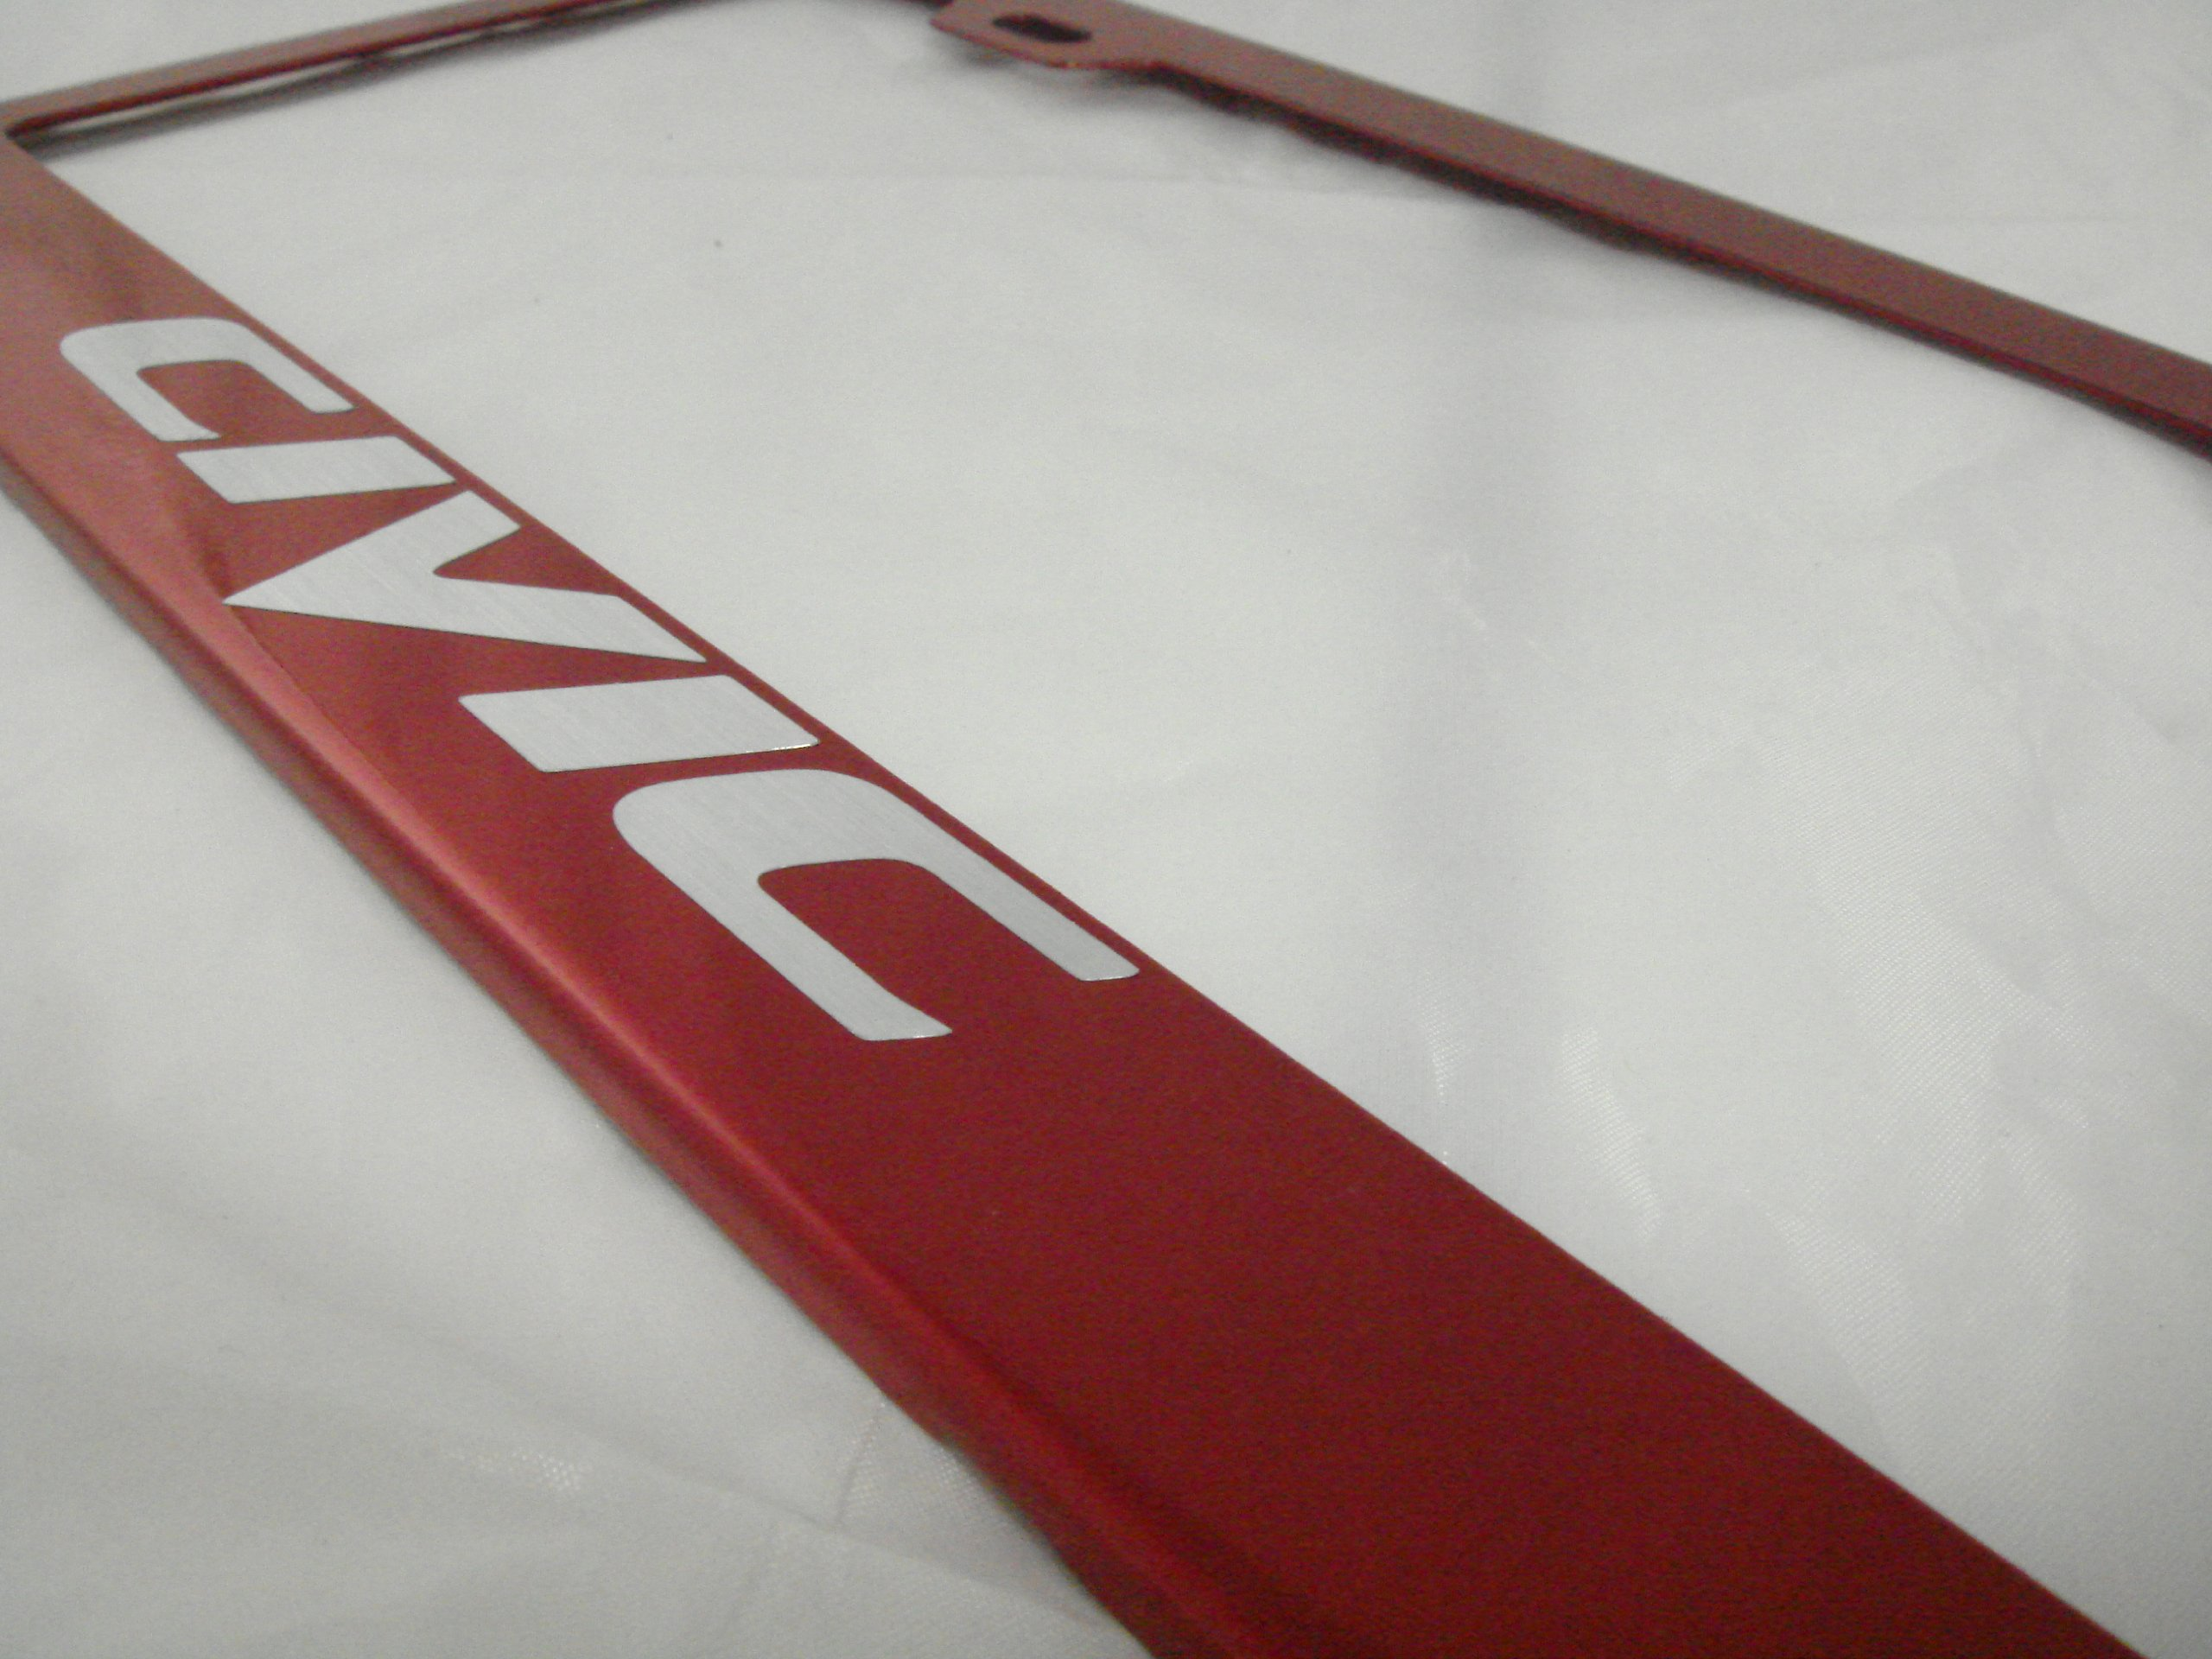 Honda Civic Mirror Red License Plate Frame < Frames < Automotive - TIBS